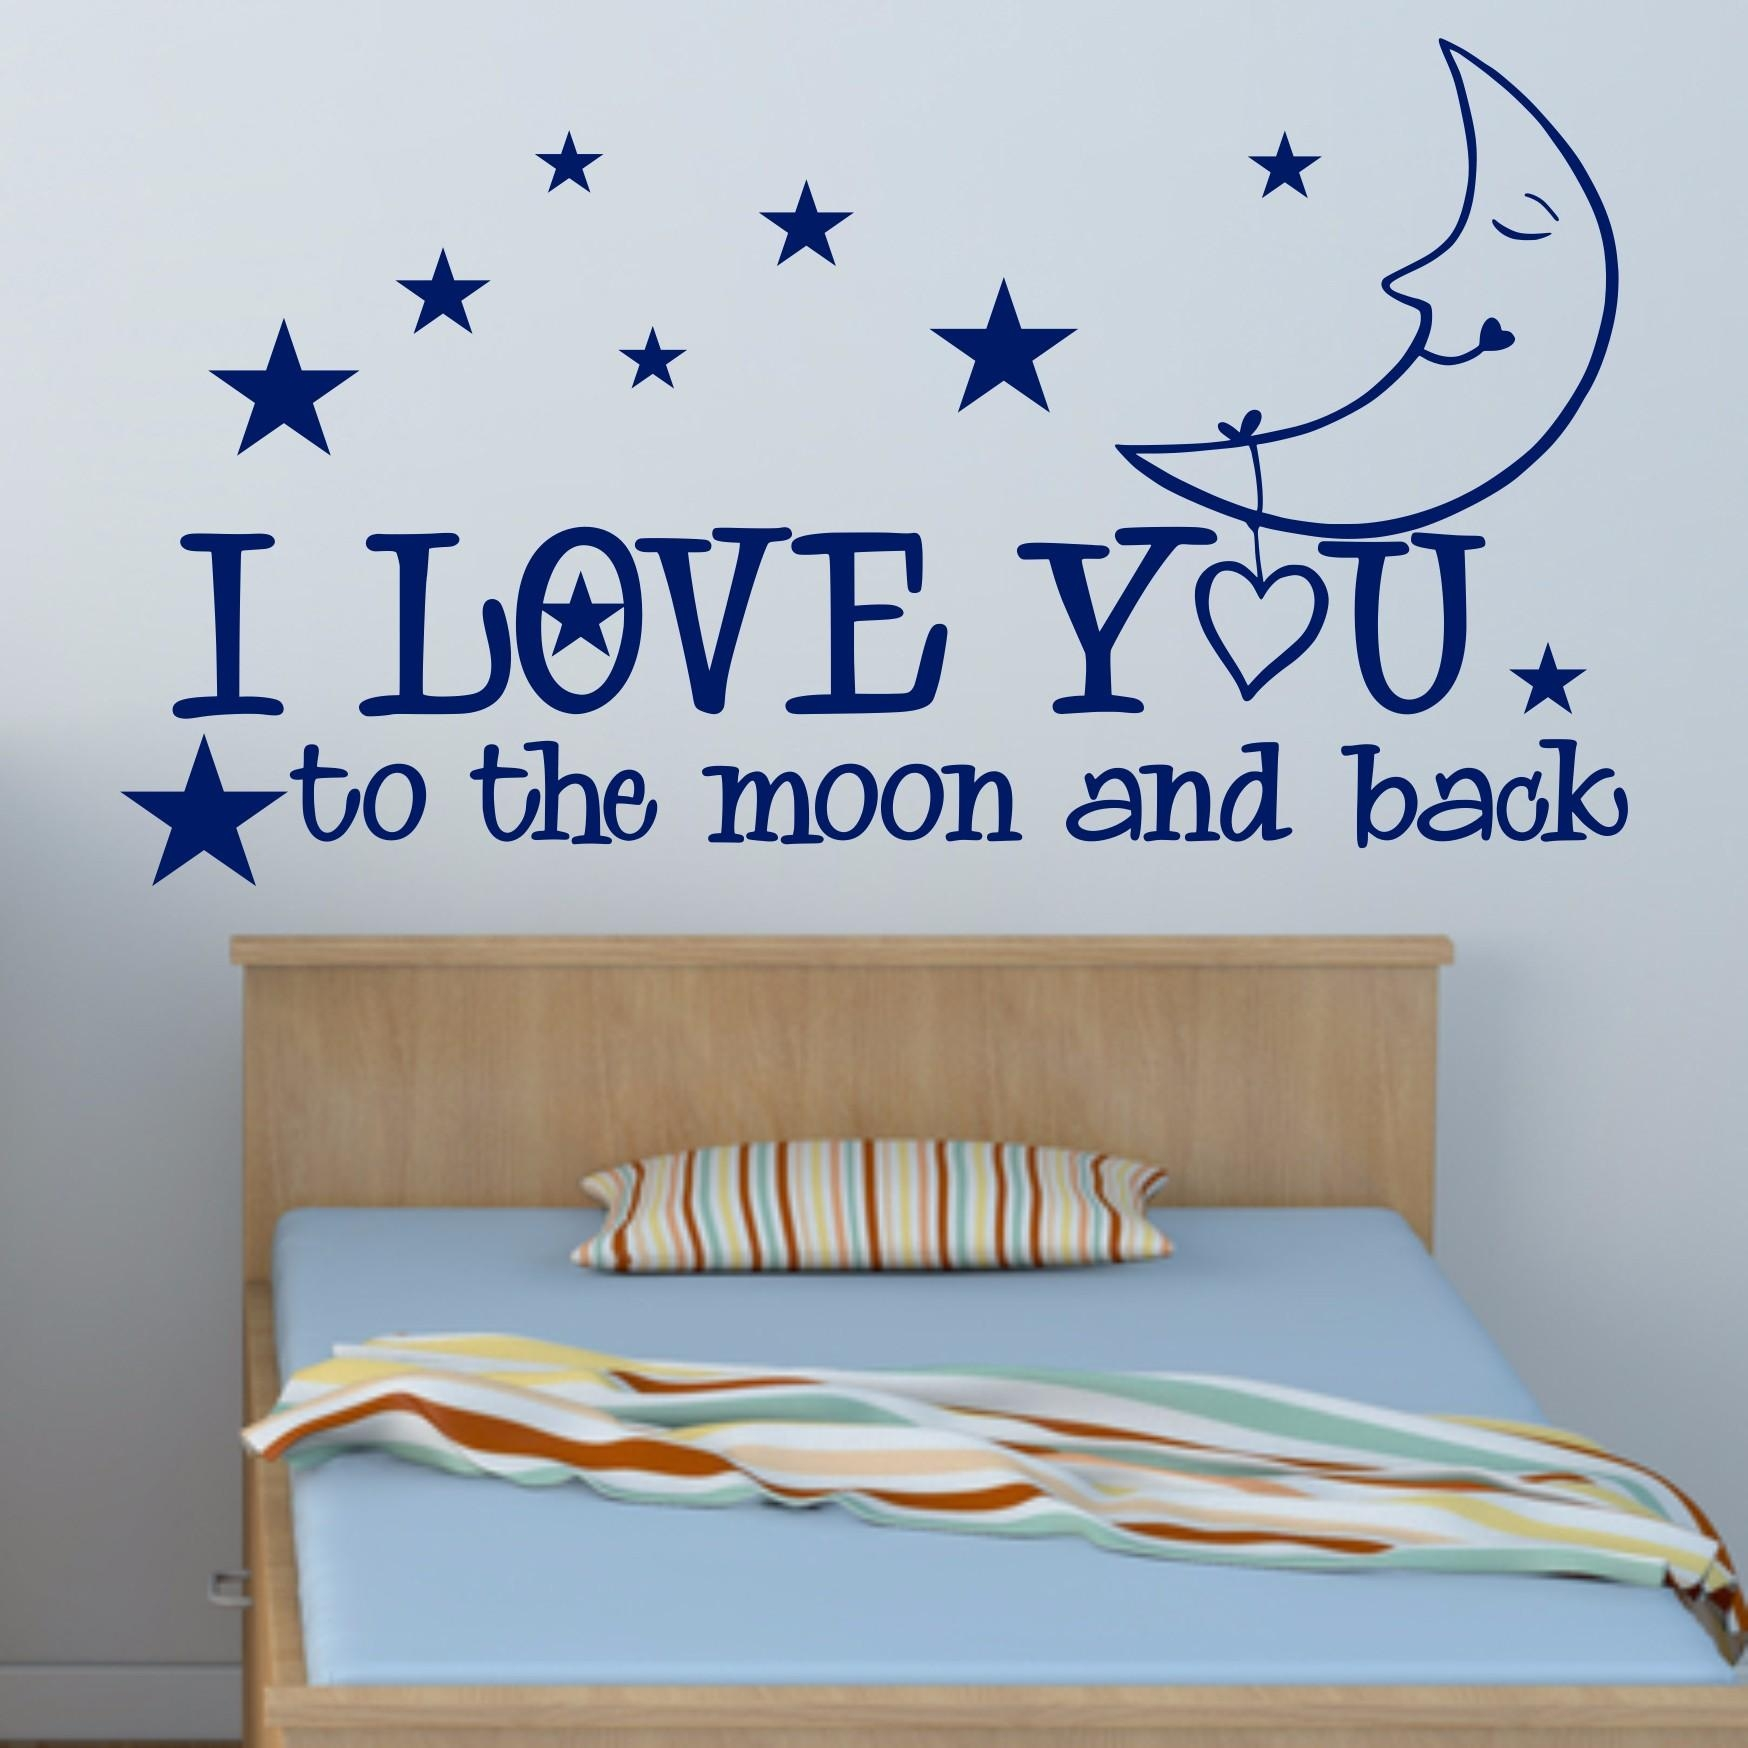 I Love You To The Moon And Back – Big Paw Print Wall Art Regarding Love You To The Moon And Back Wall Art (Image 5 of 20)